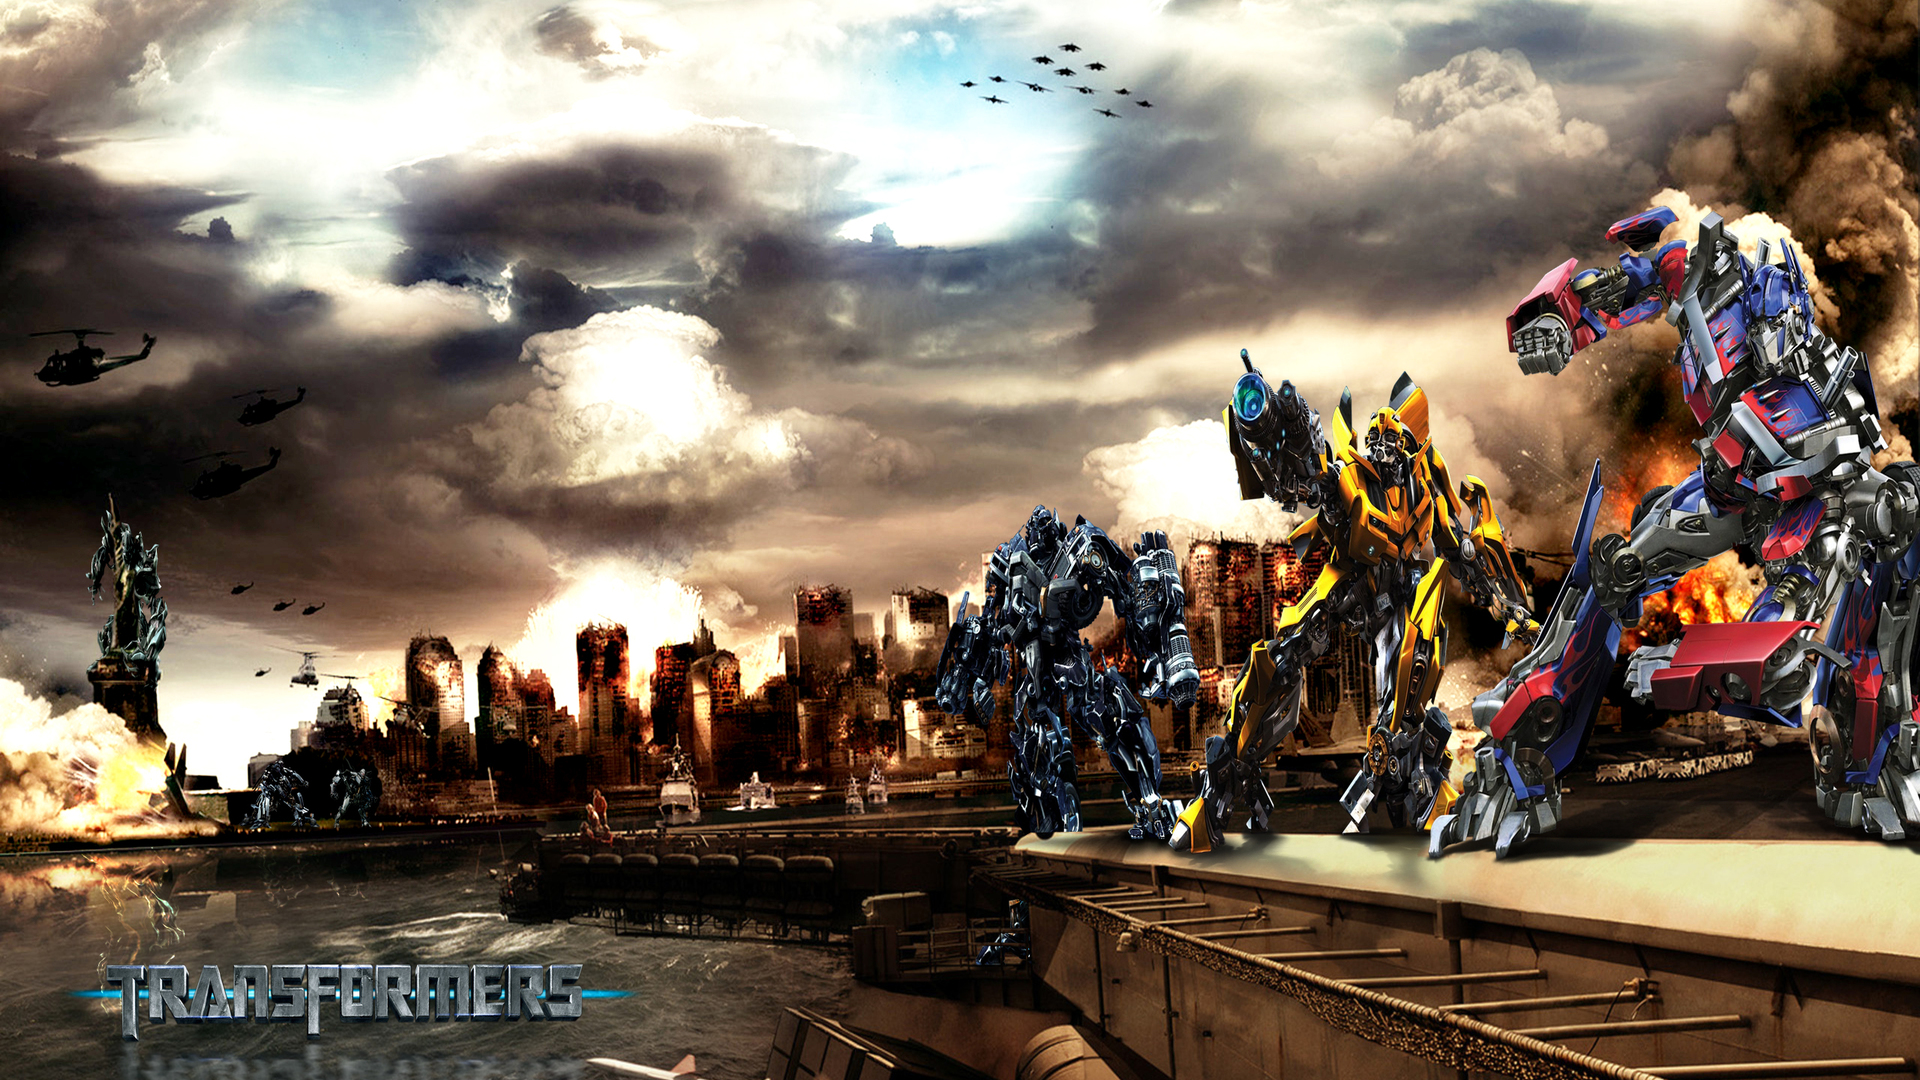 Robot 2 0 Movie Hd Wallpapers Download Free 1080p: Hot New Movies/Cars Images Transformers 1 The Saga Begins